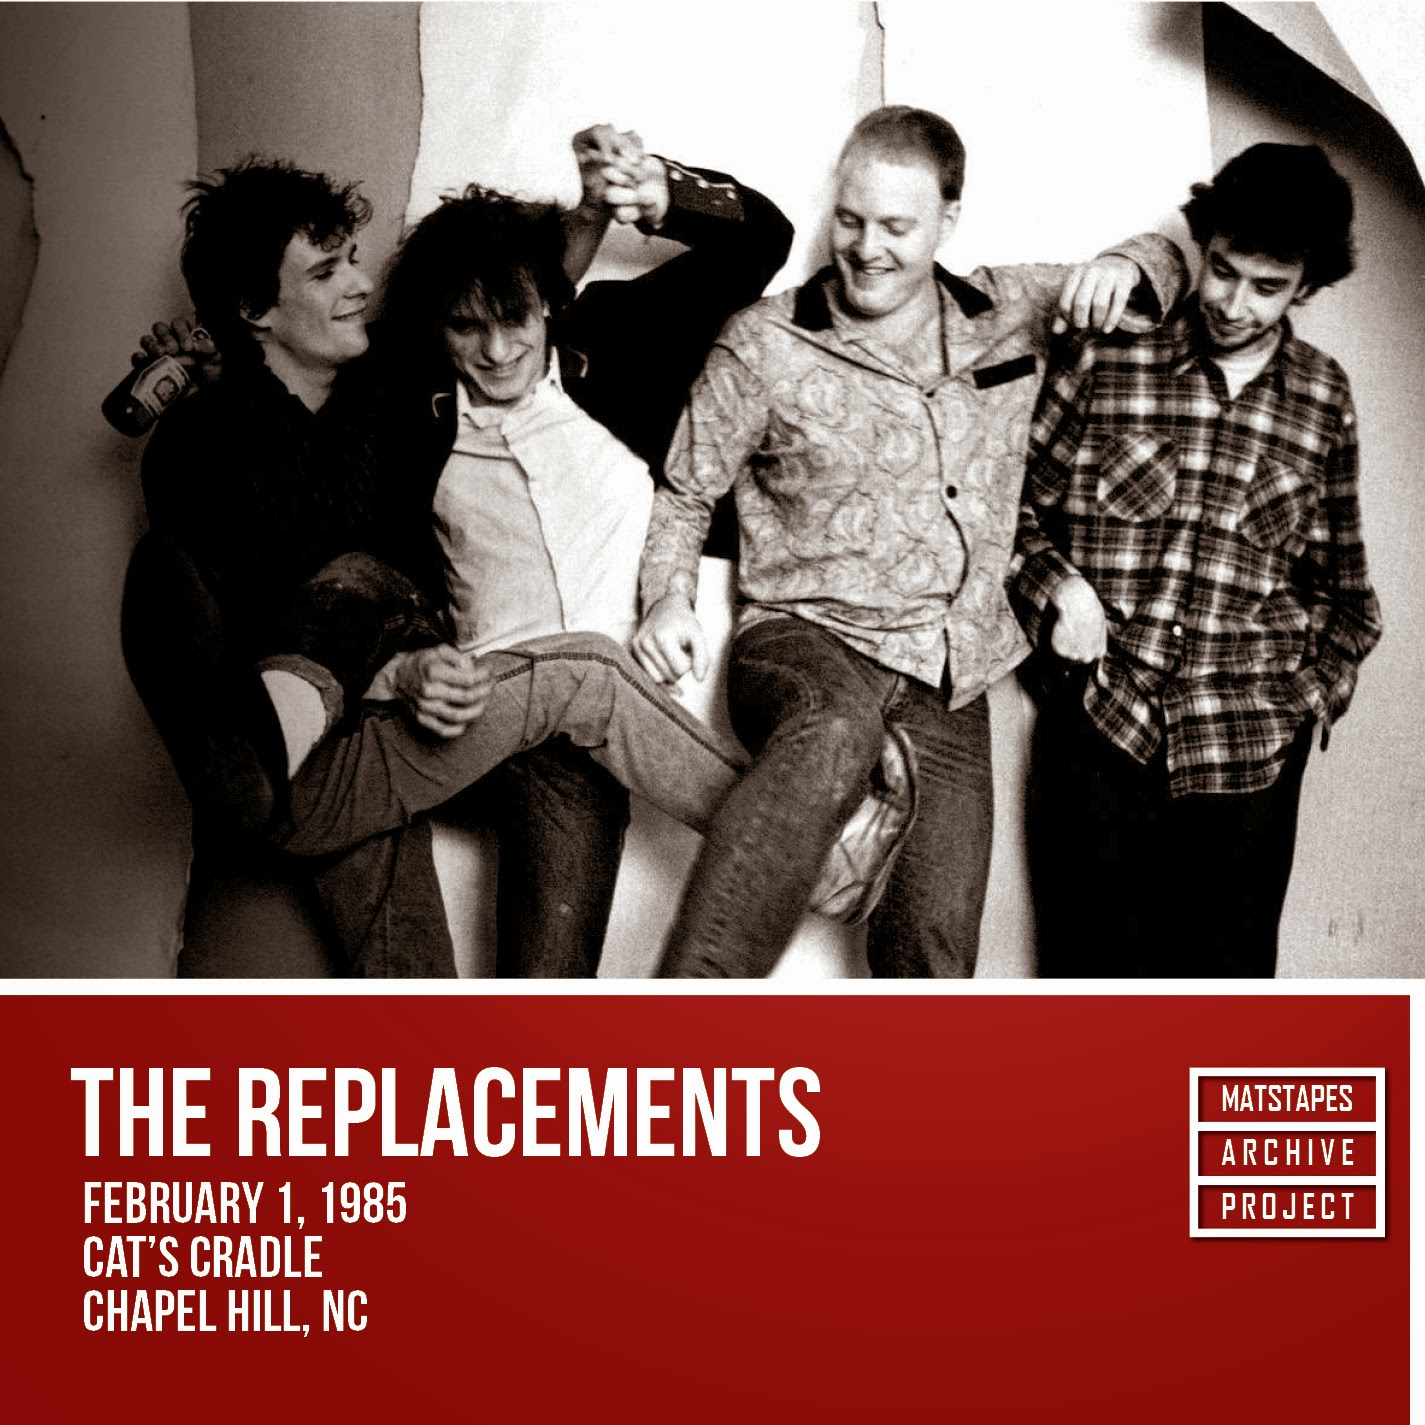 The replacements suck